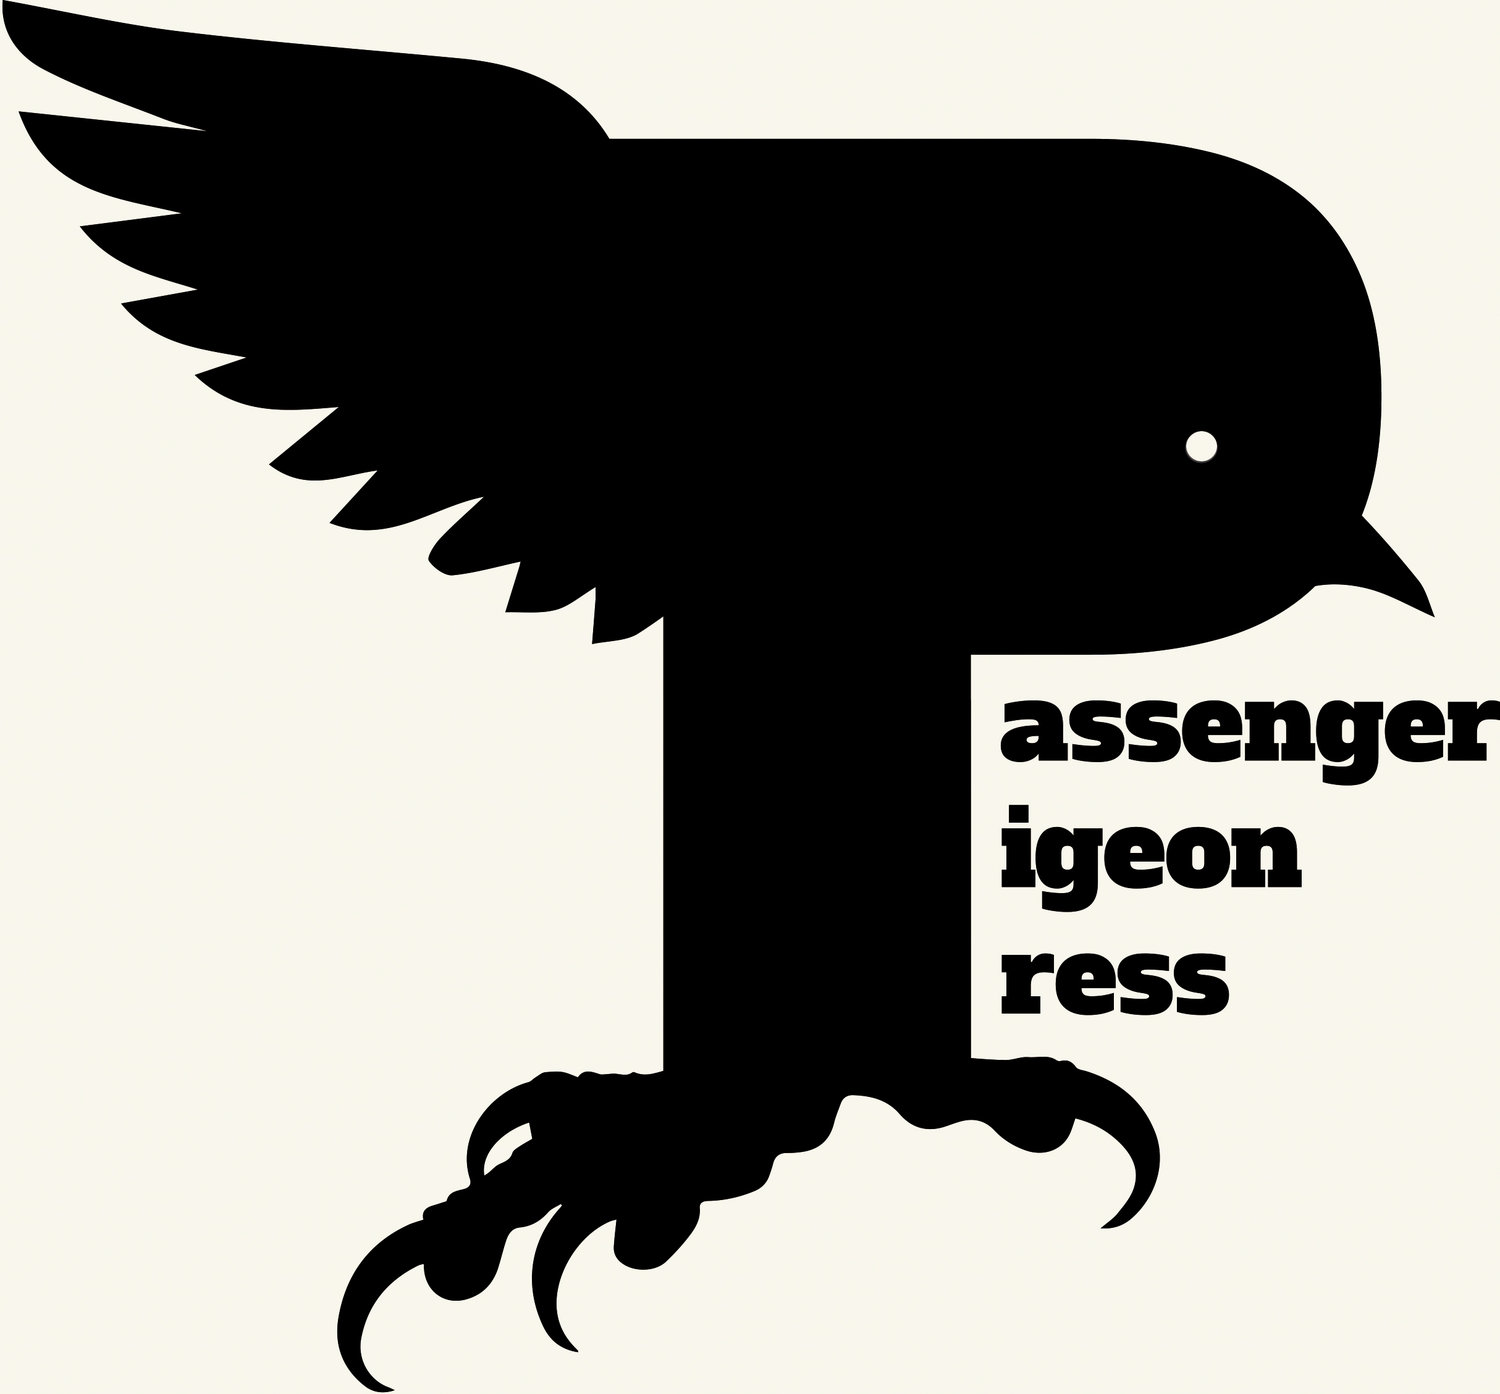 Passenger Pigeon Press